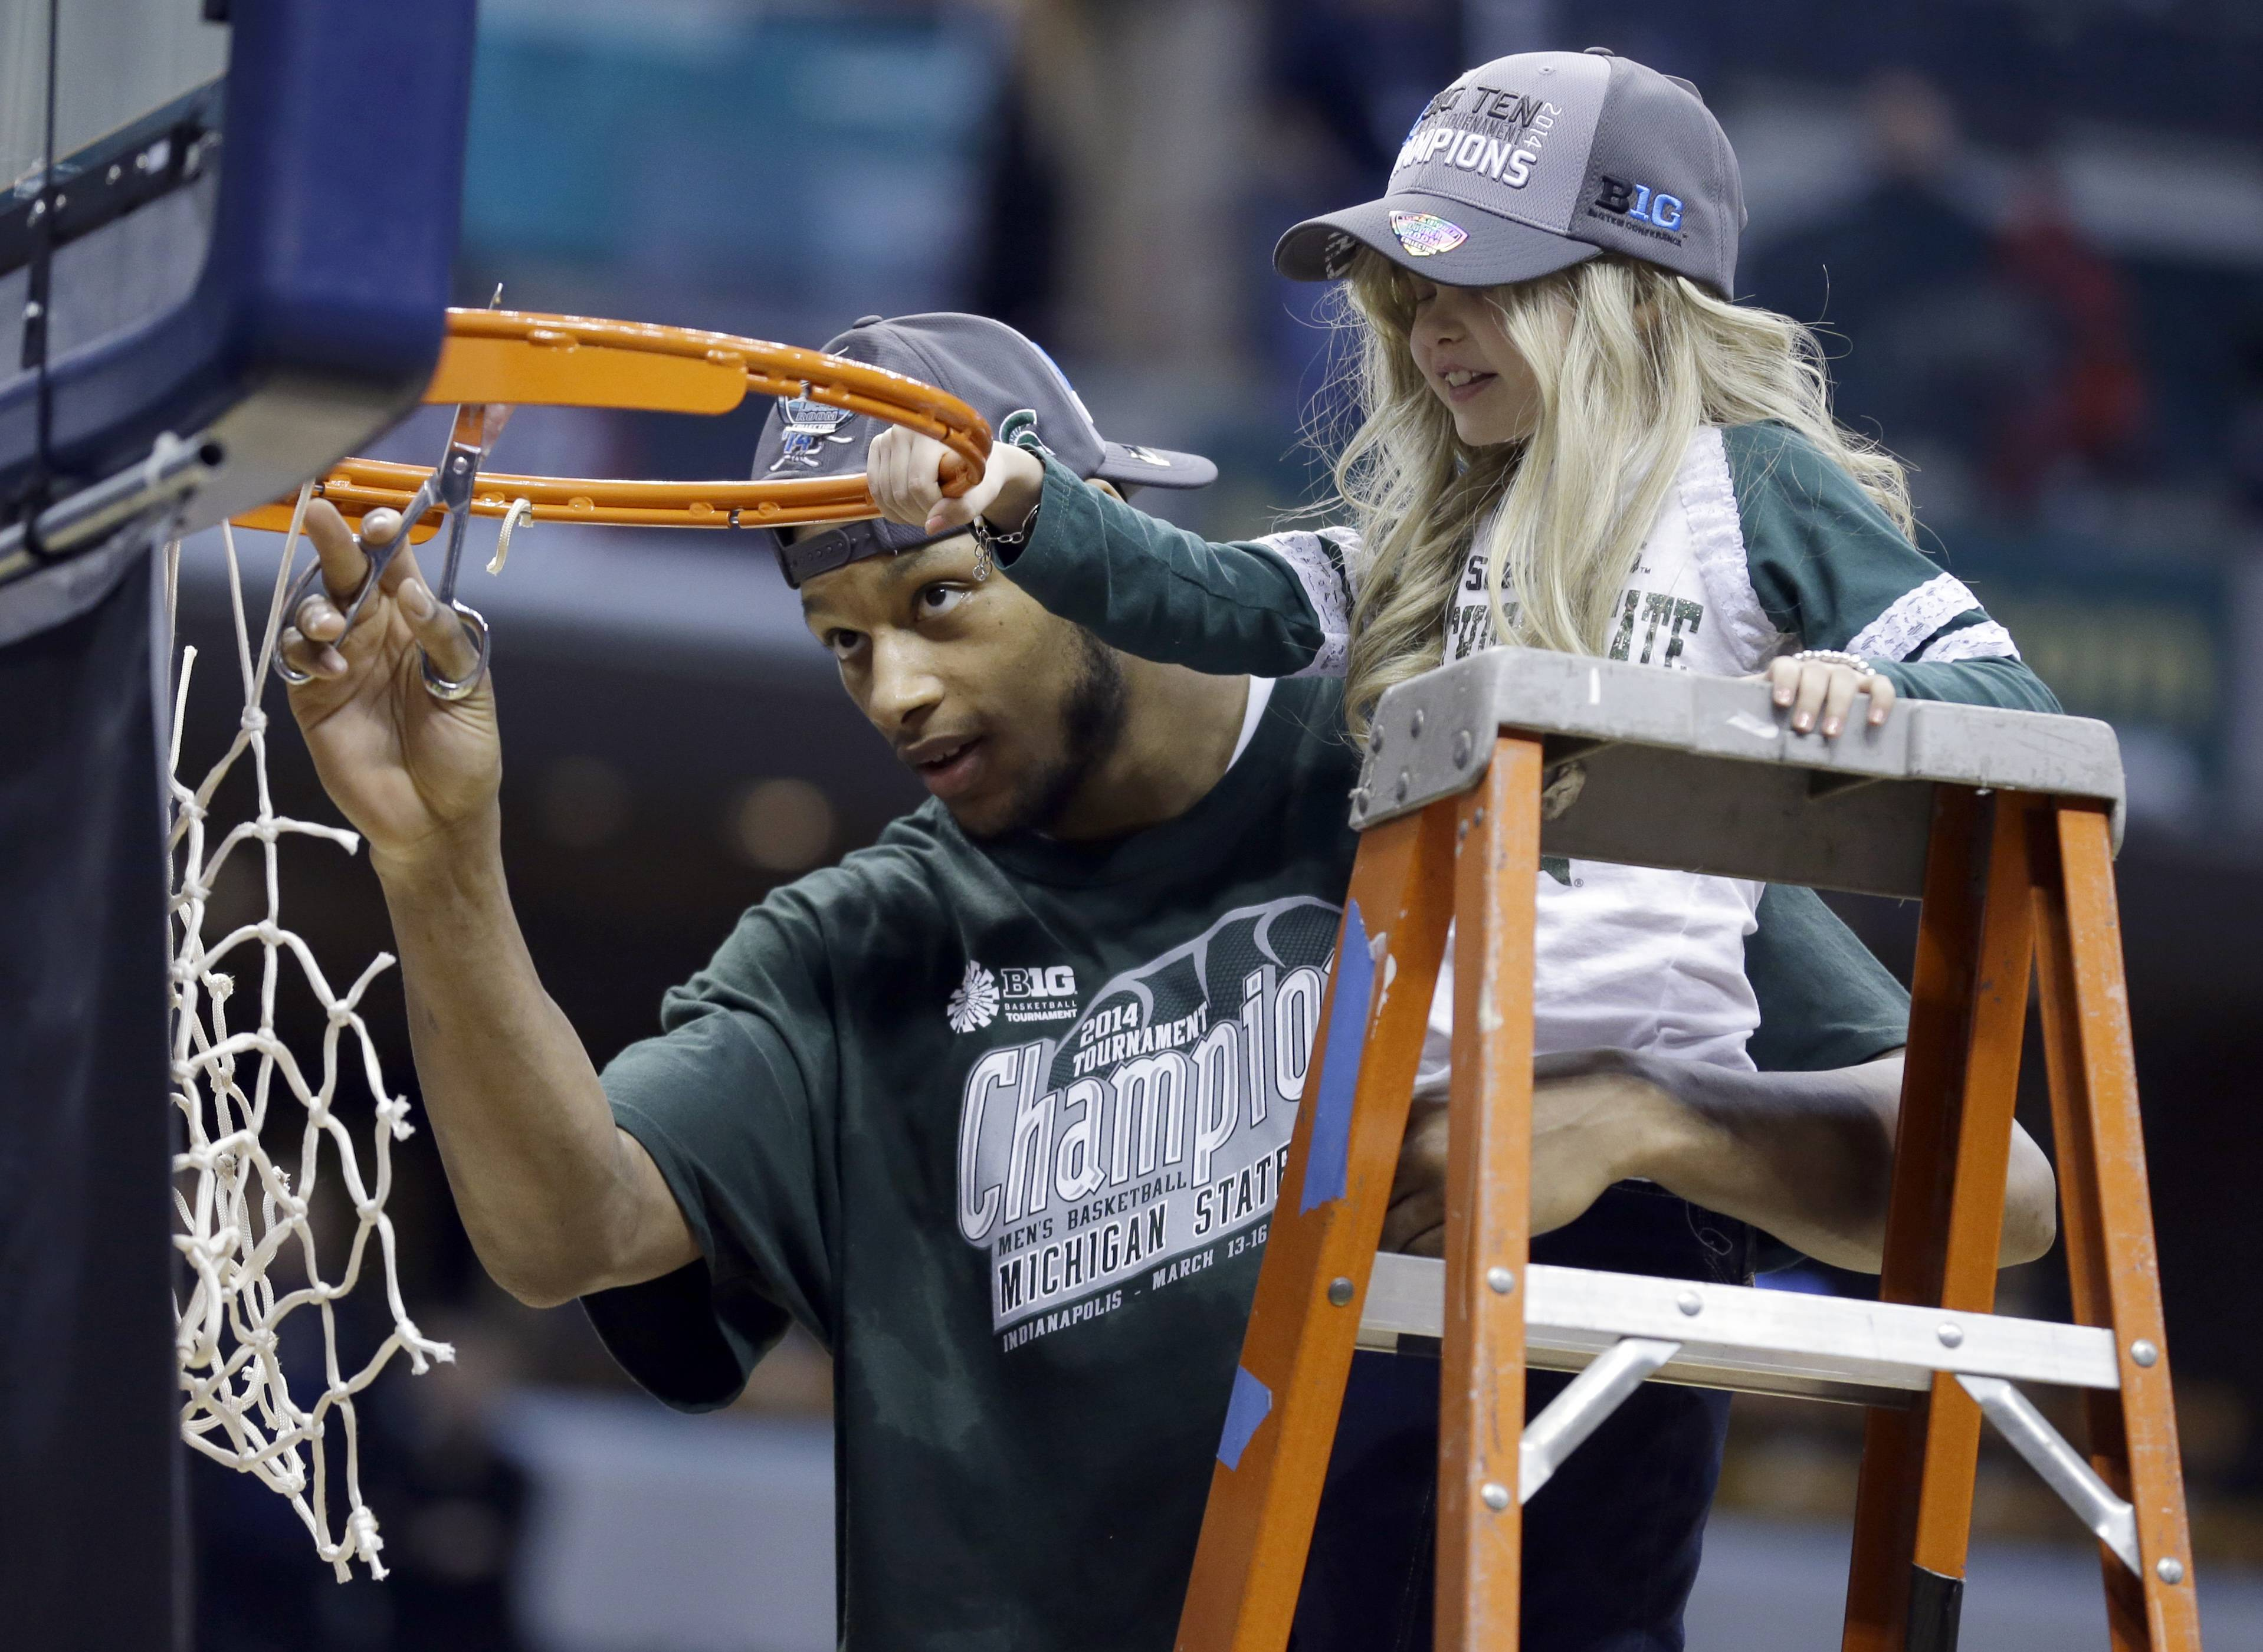 Michigan State forward Adreian Payne, left, cuts the net with Lacey Holsworth, who is battling cancer, after the Spartans defeated Michigan 69-55 in the Big Ten tournament title game Sunday in Indianapolis.